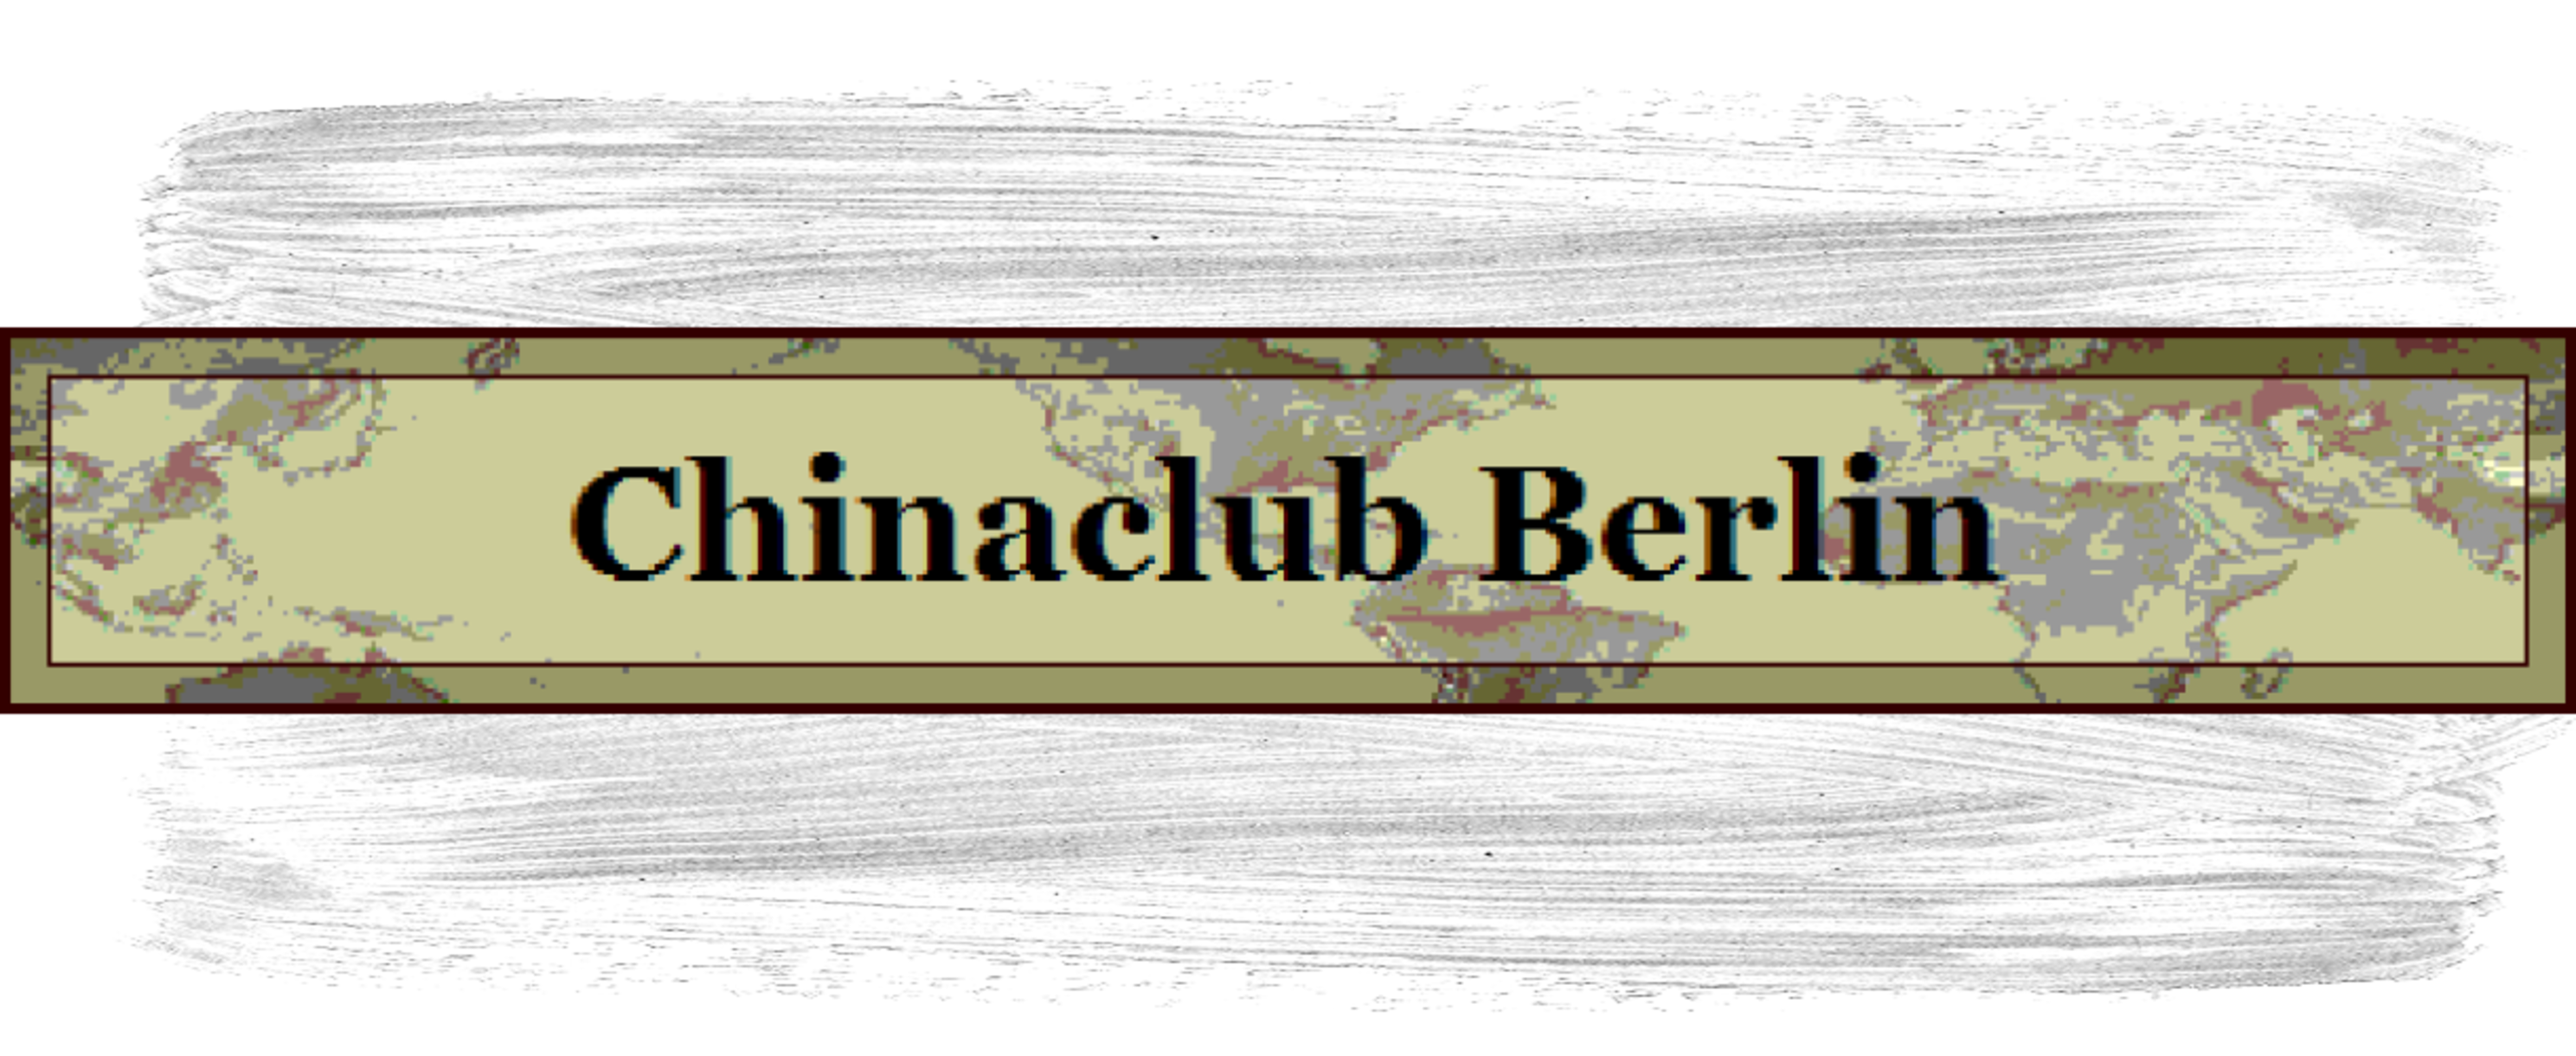 Chinaclub Berlin